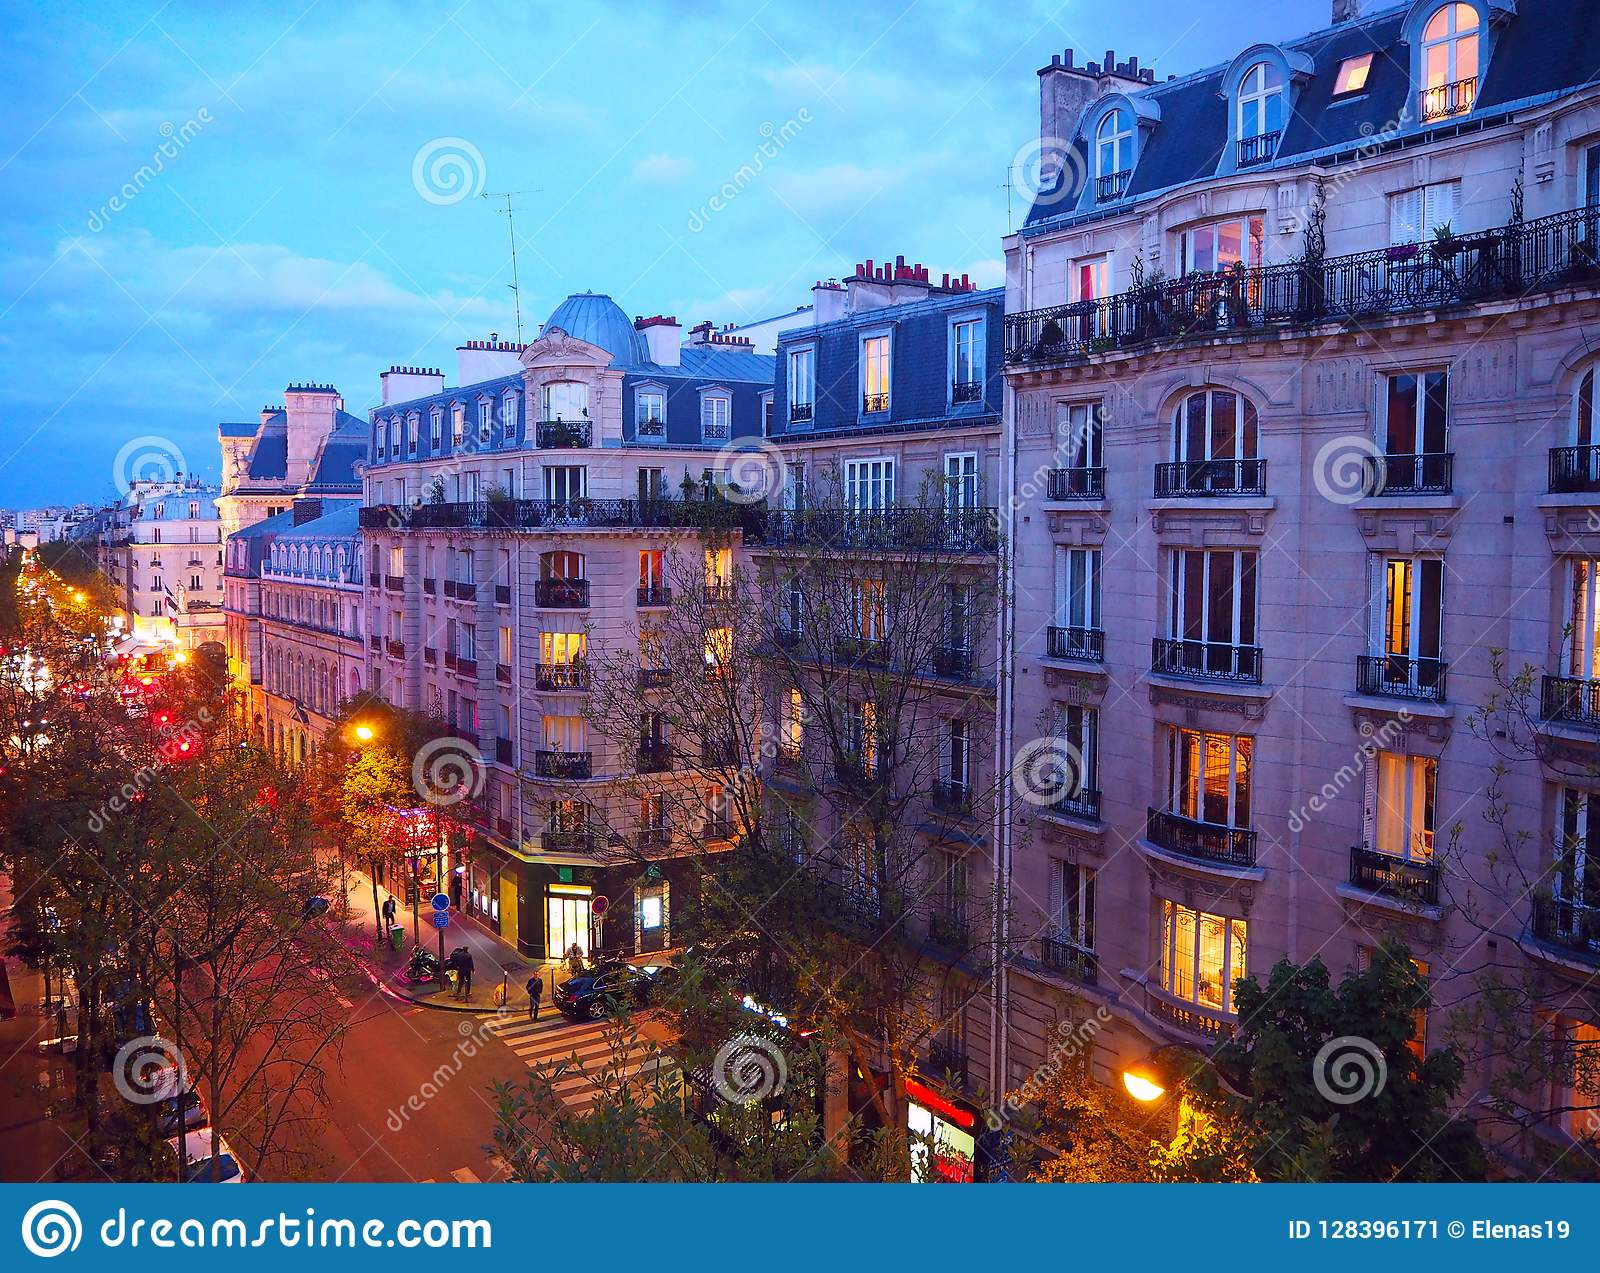 Paris Night City Landscape Stylish Beautiful Houses Make An Architectural Complex Of City Street Montmartre District Paris France Stock Image Image Of Aerial Architectural 128396171